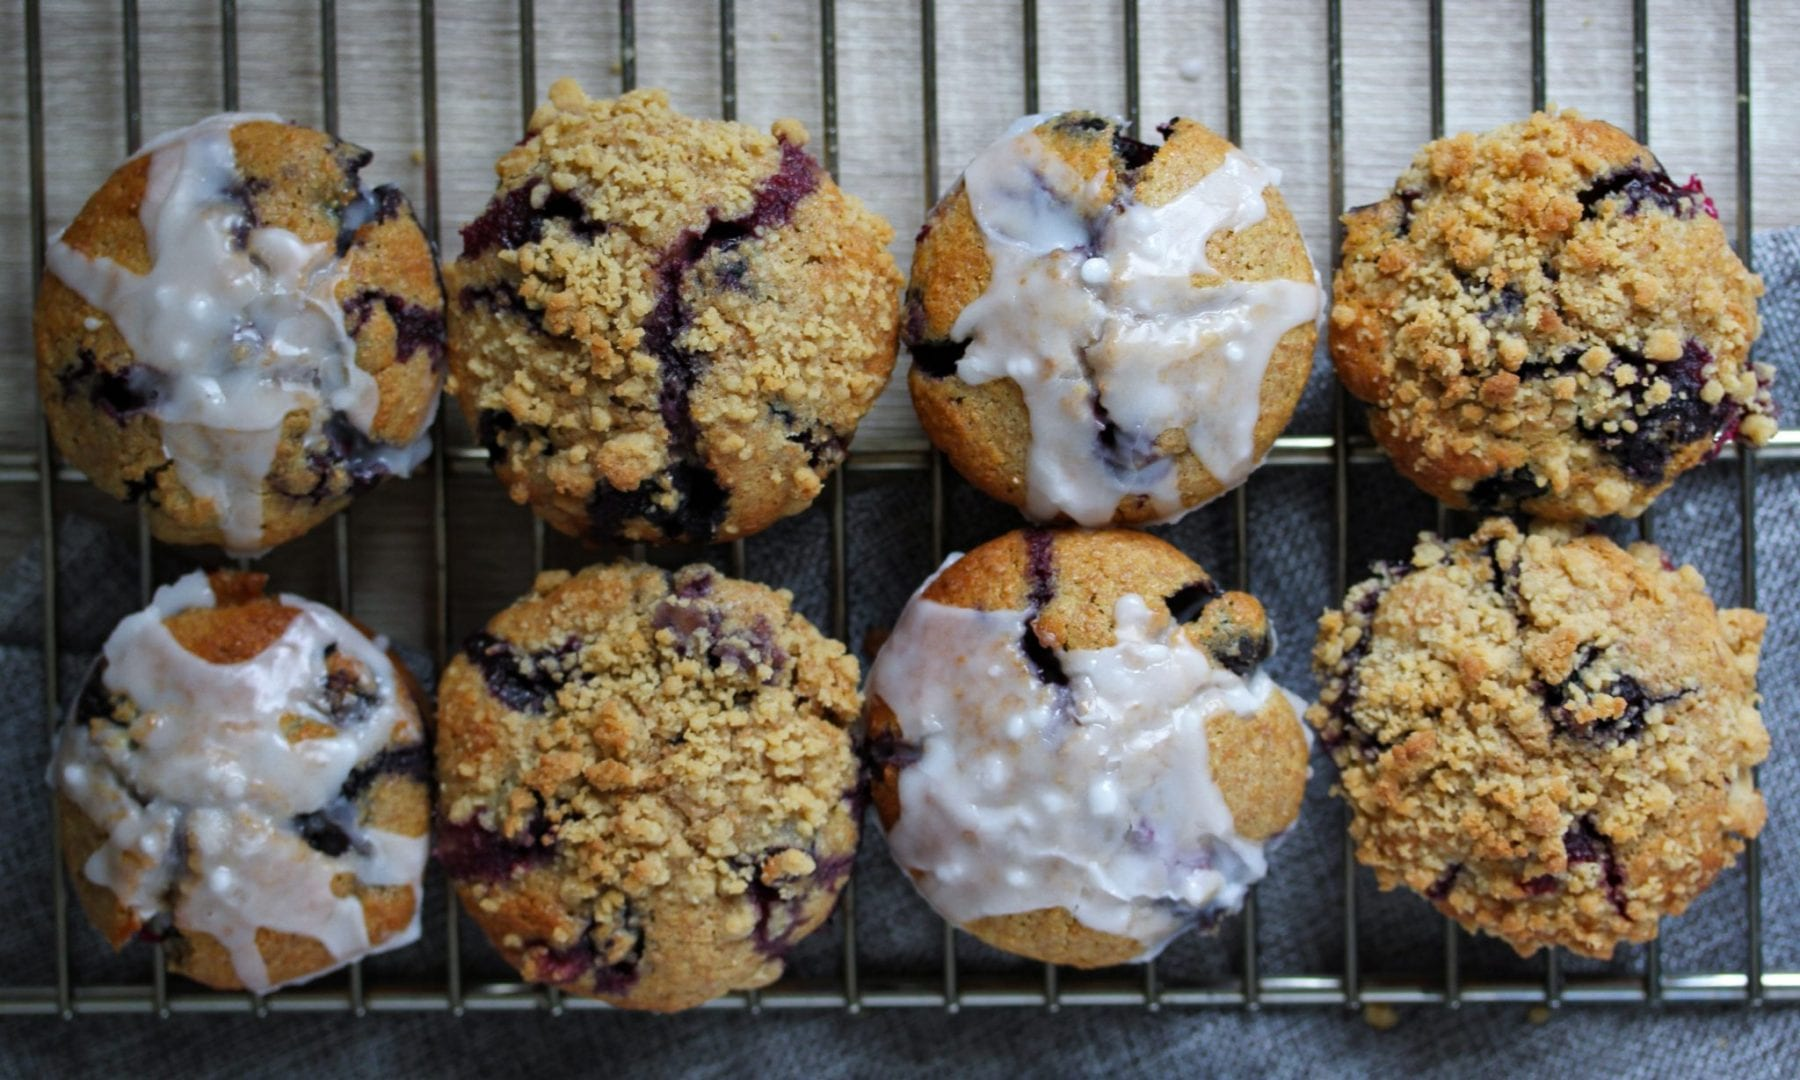 Blueberry muffins - wholewheat blueberry muffins - healthy blueberry muffins (2)